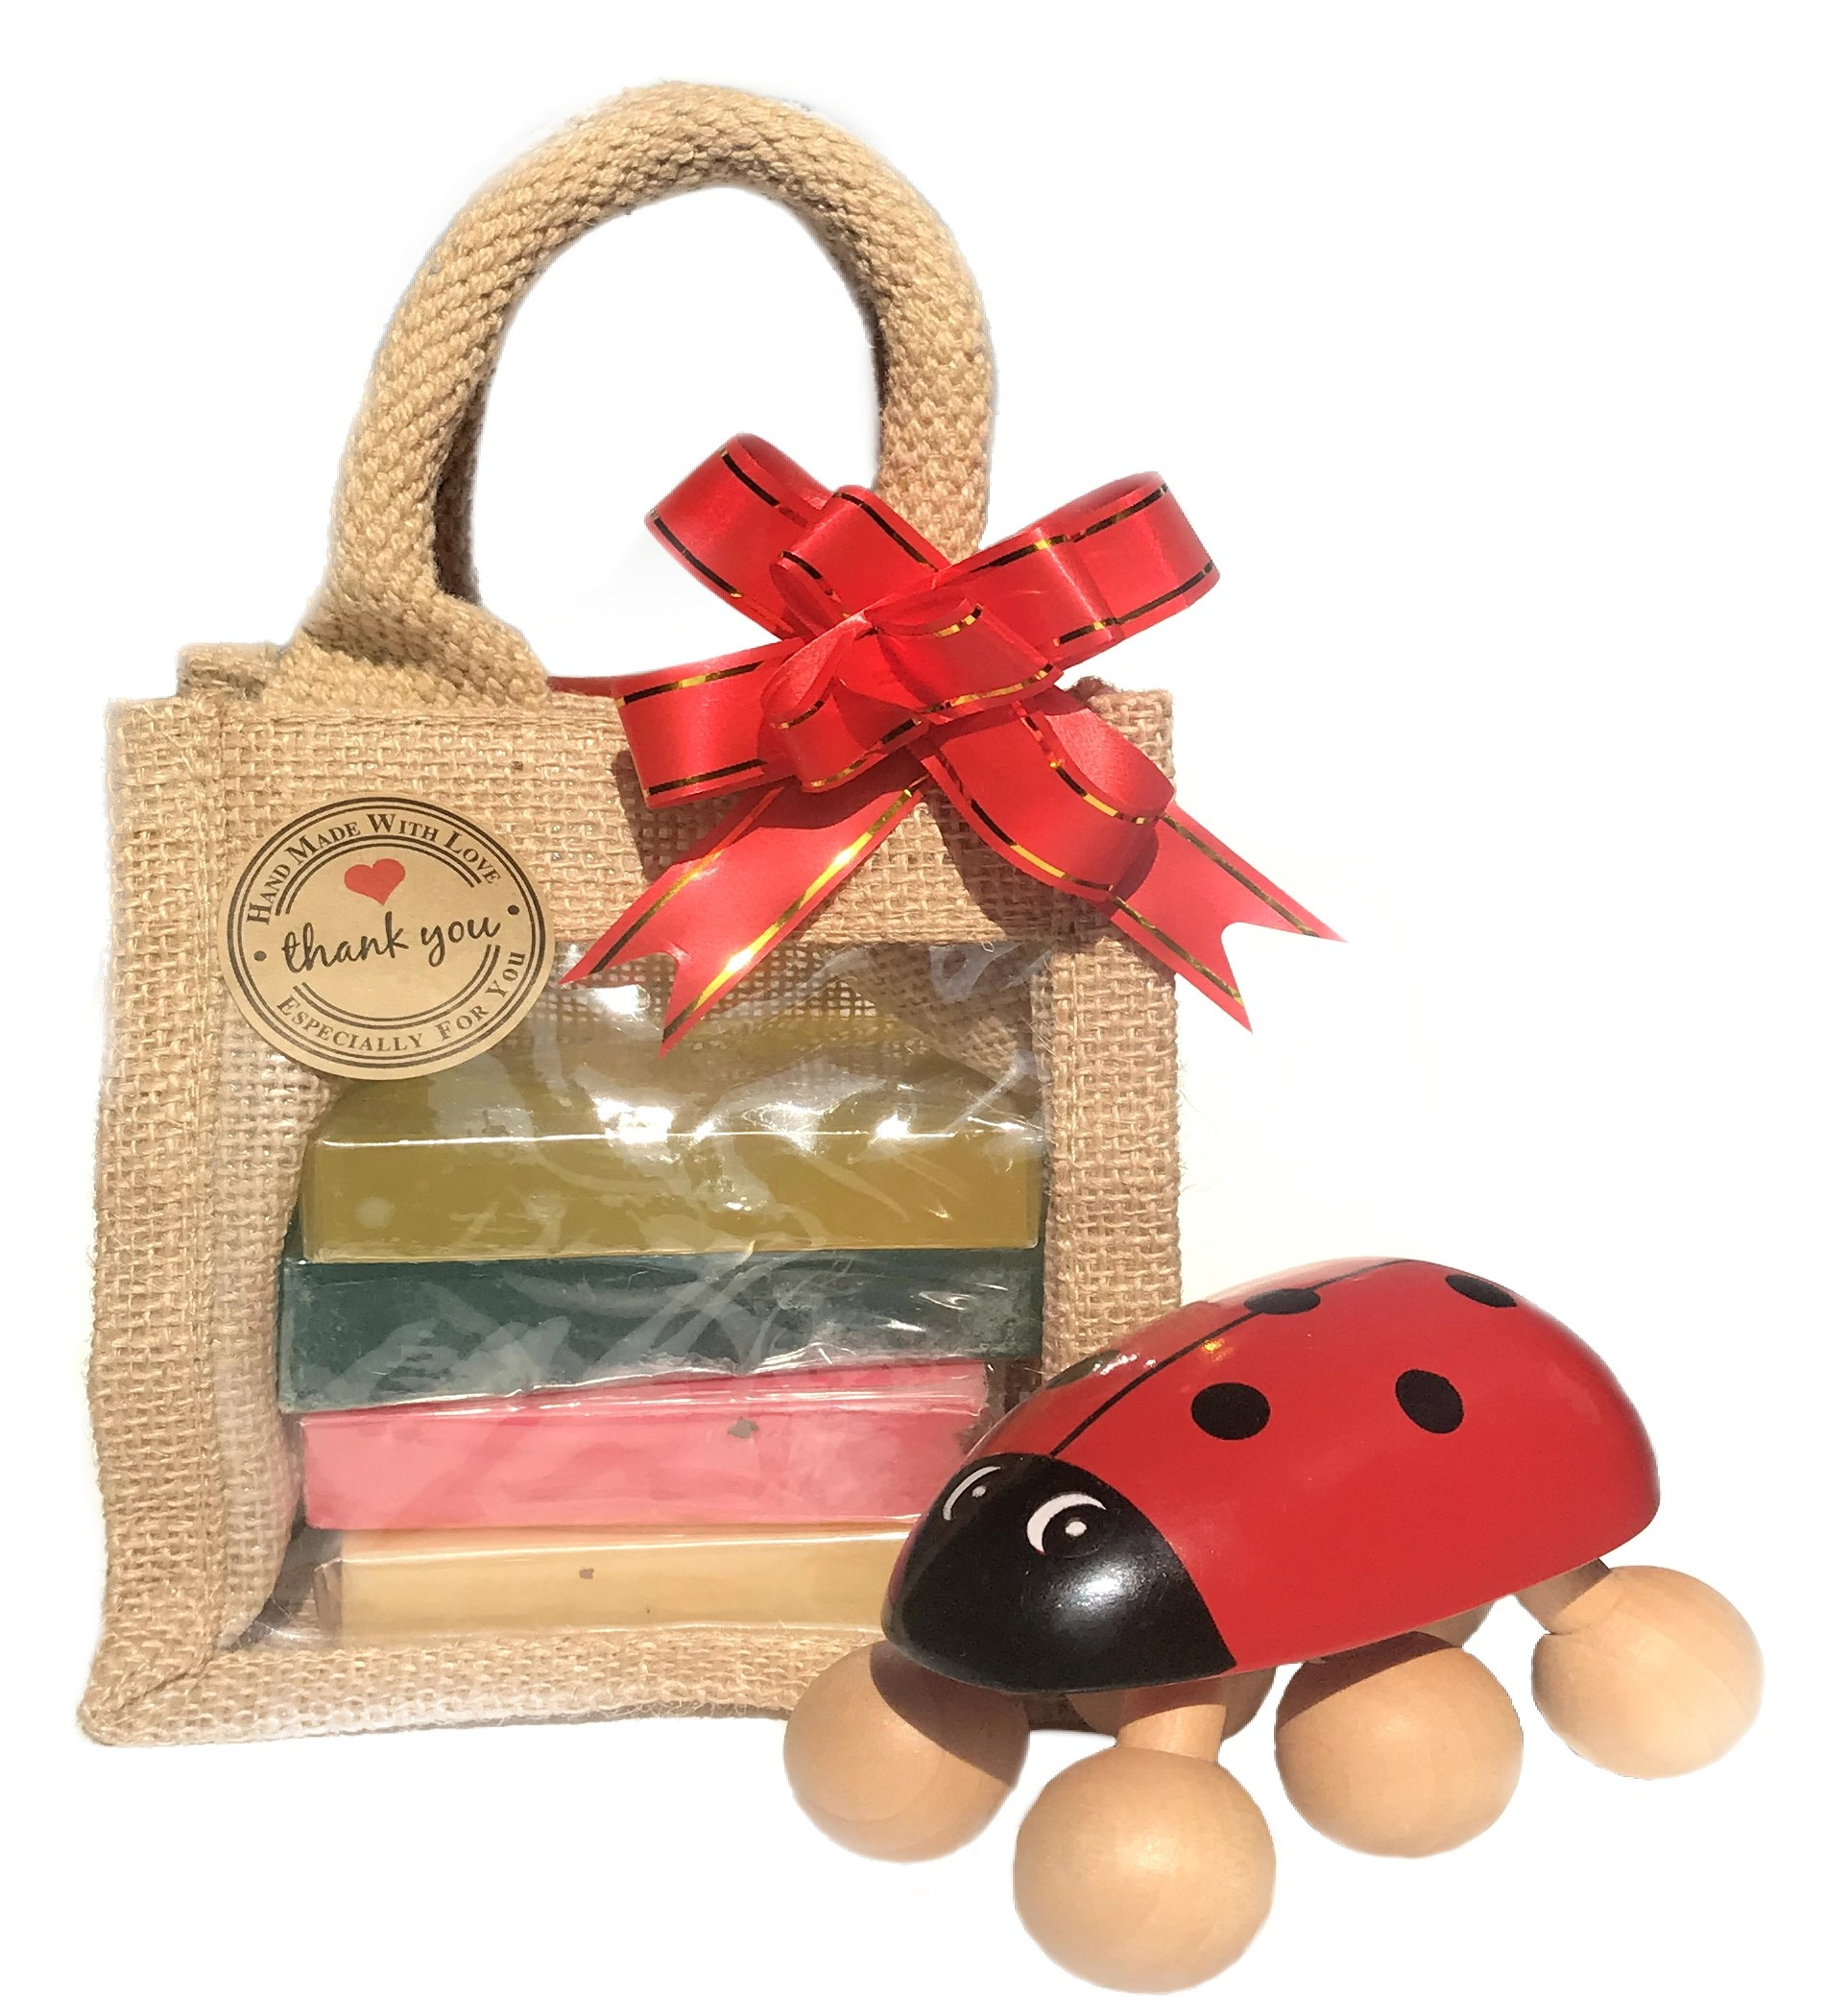 Soaps & Wooden Massager Gift Set